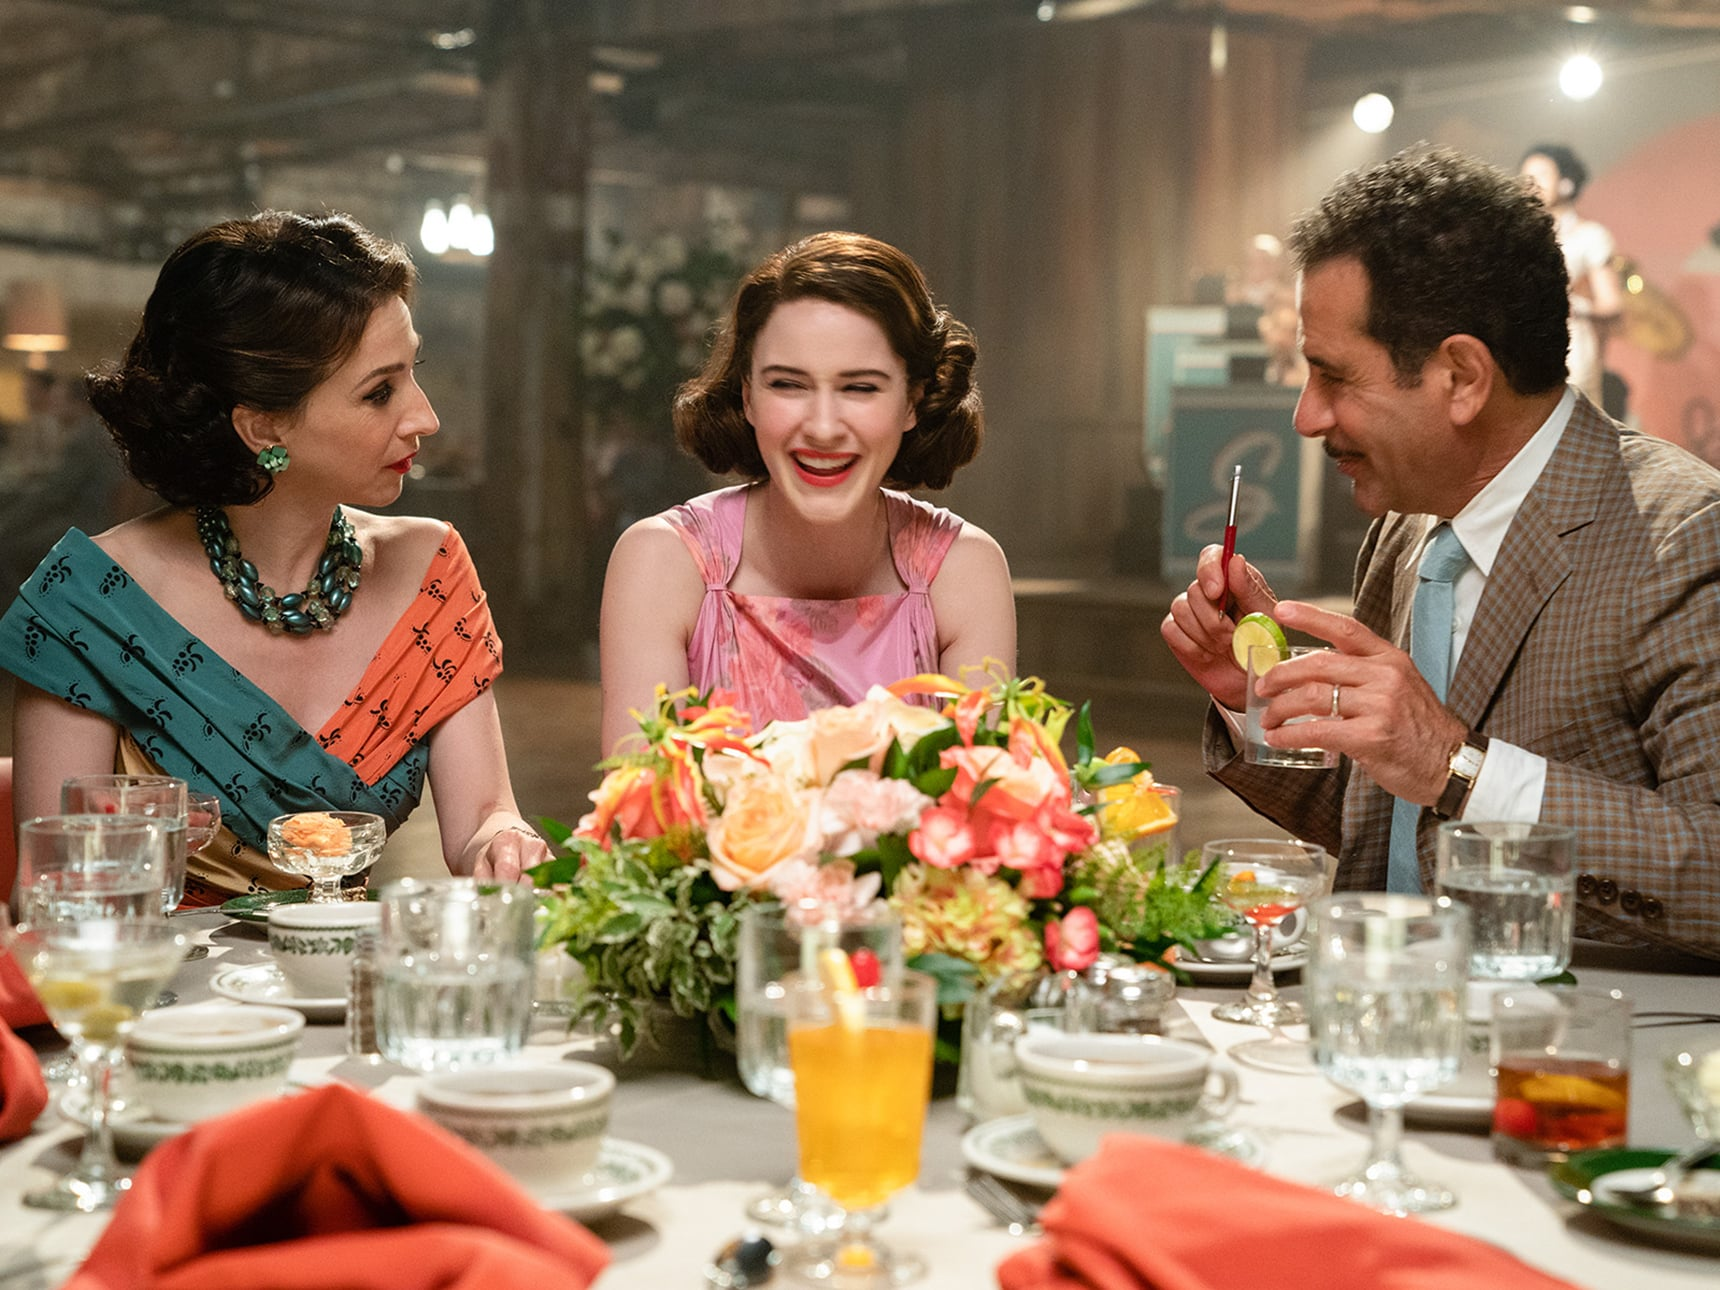 THE MARVELOUS MRS. MAISEL, from left: Marin Hinkle, Rachel Brosnahan, Tony Shalhoub, 'We're Going To The Catskills!', (Season 2, ep. 204, aired Dec. 5, 2018). photo: Nicole Rivelli / Amazon / Courtesy: Everett Collection